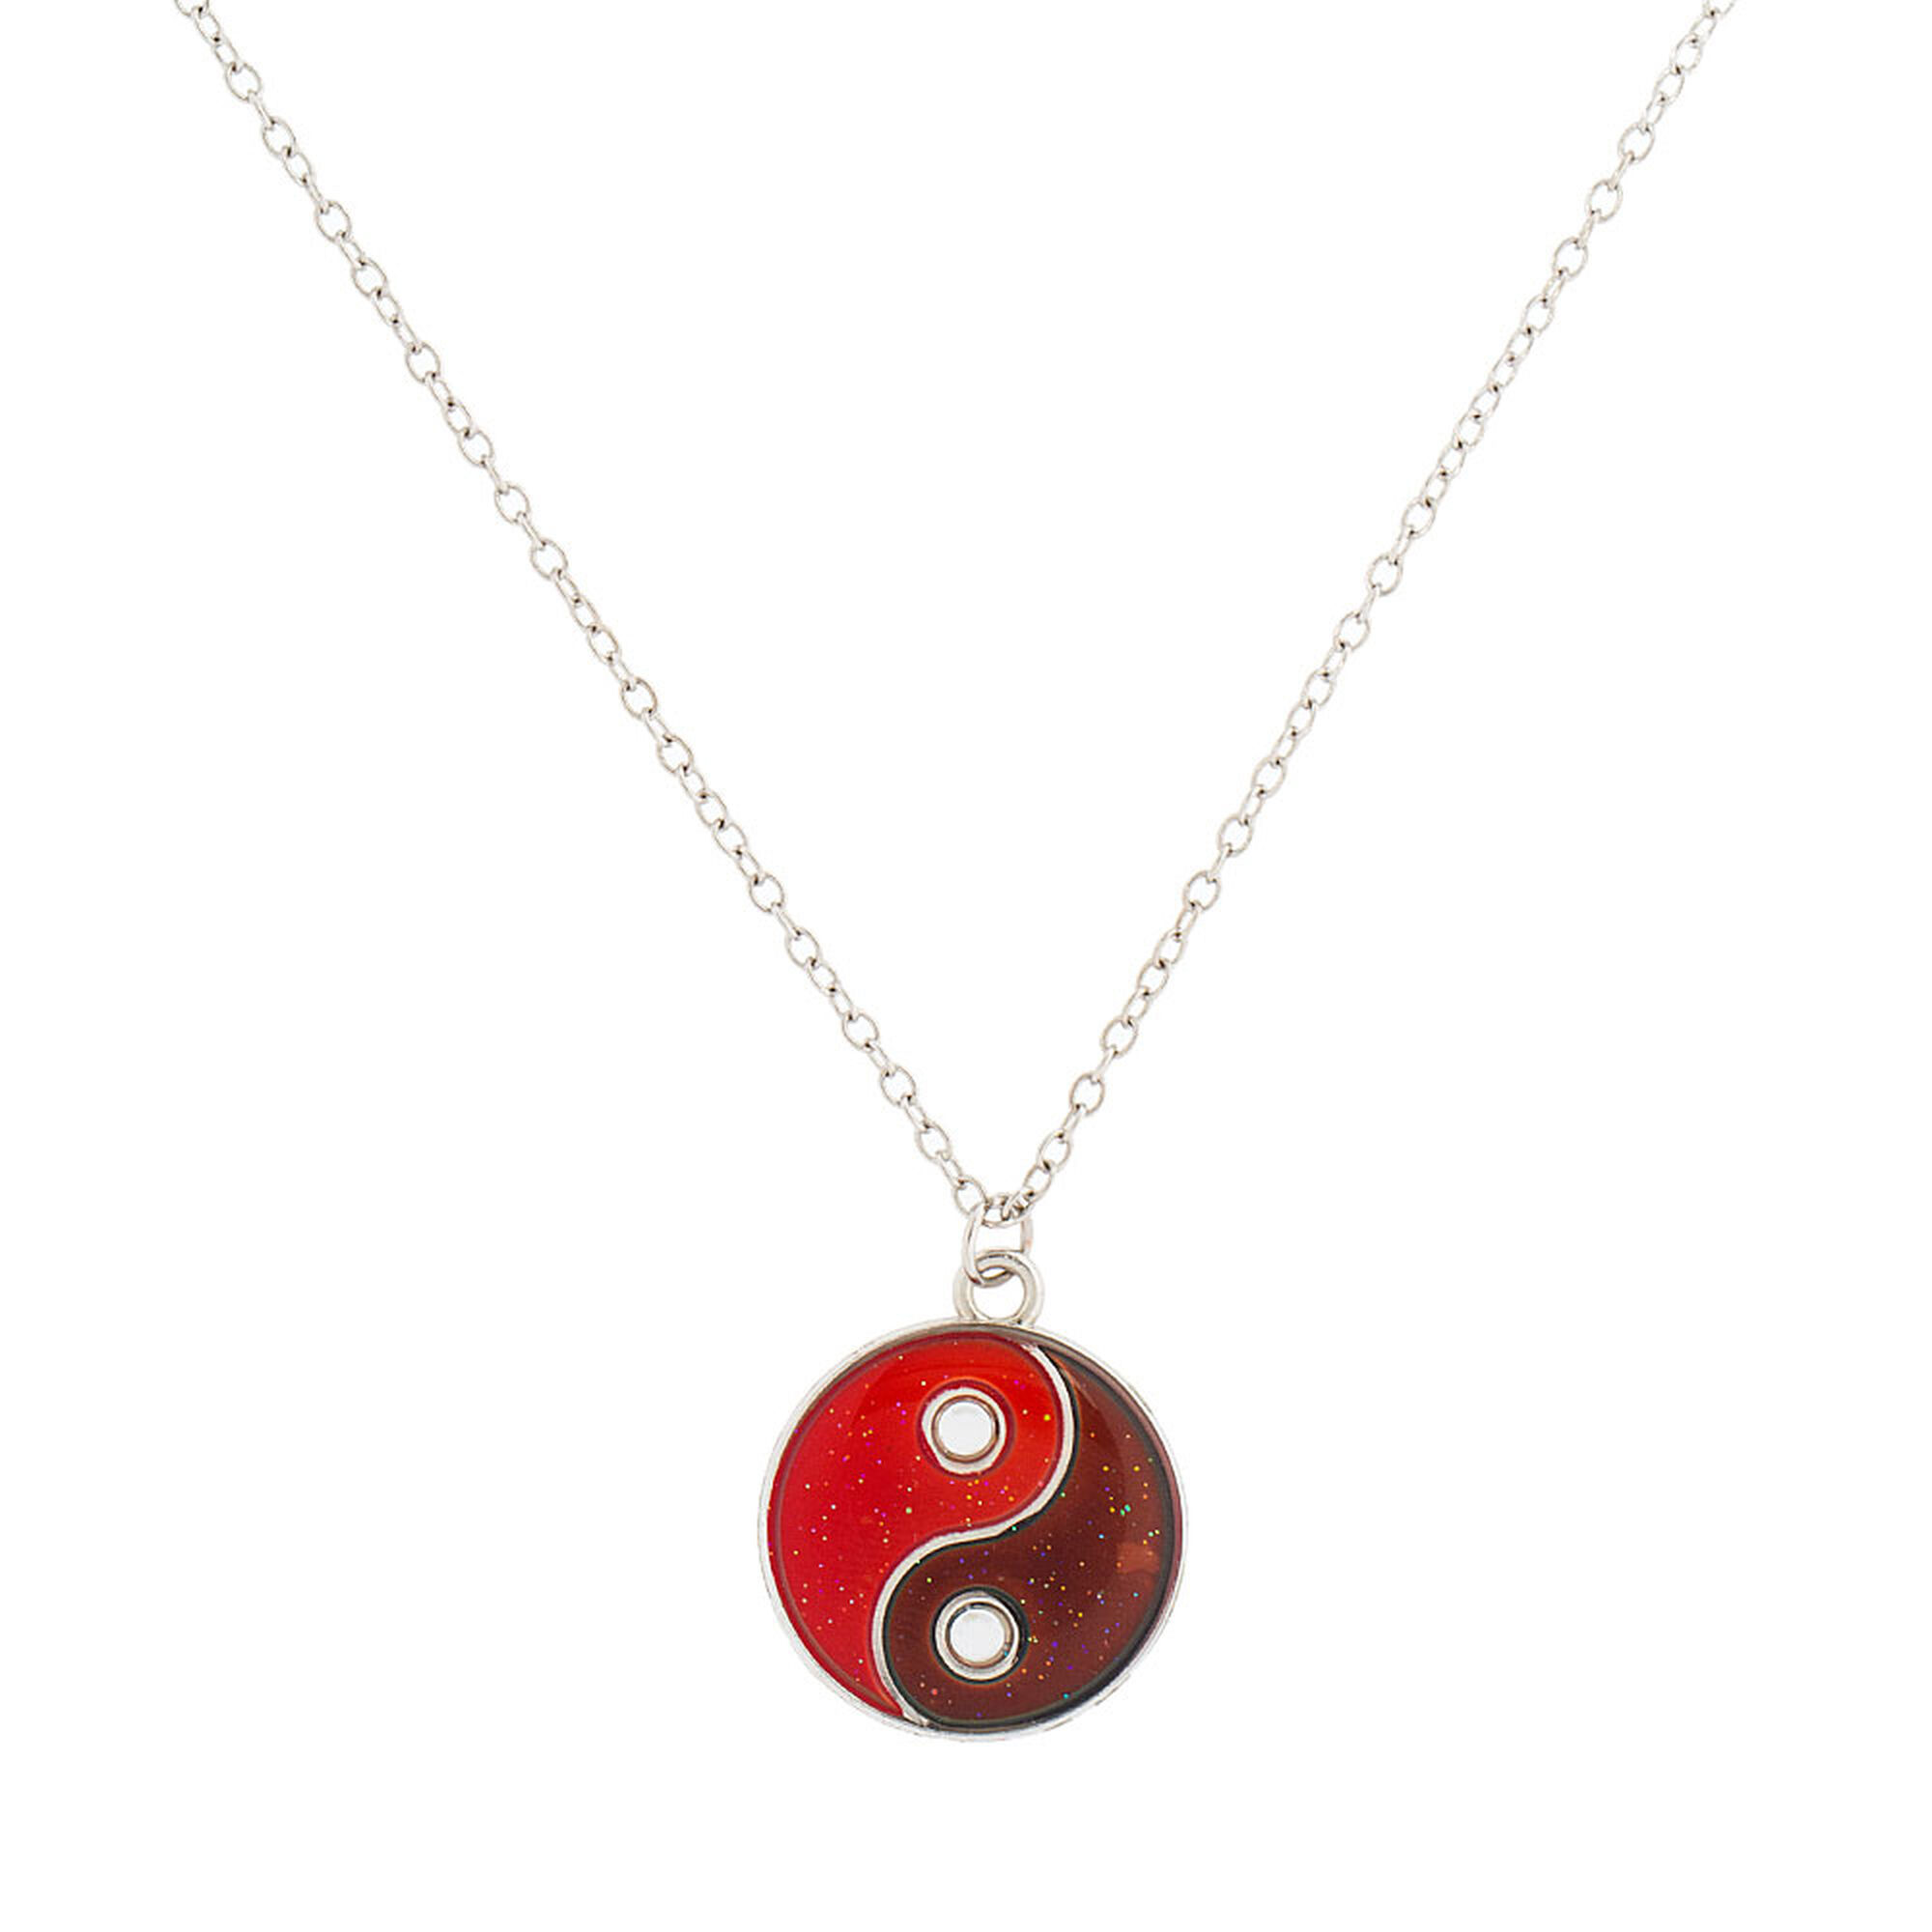 yang details to your cn of balance yin represents features necklace forces necklaces duality silver with the bring natural bkw cubic products and symbol this sparkle crystal which sterling style perfect